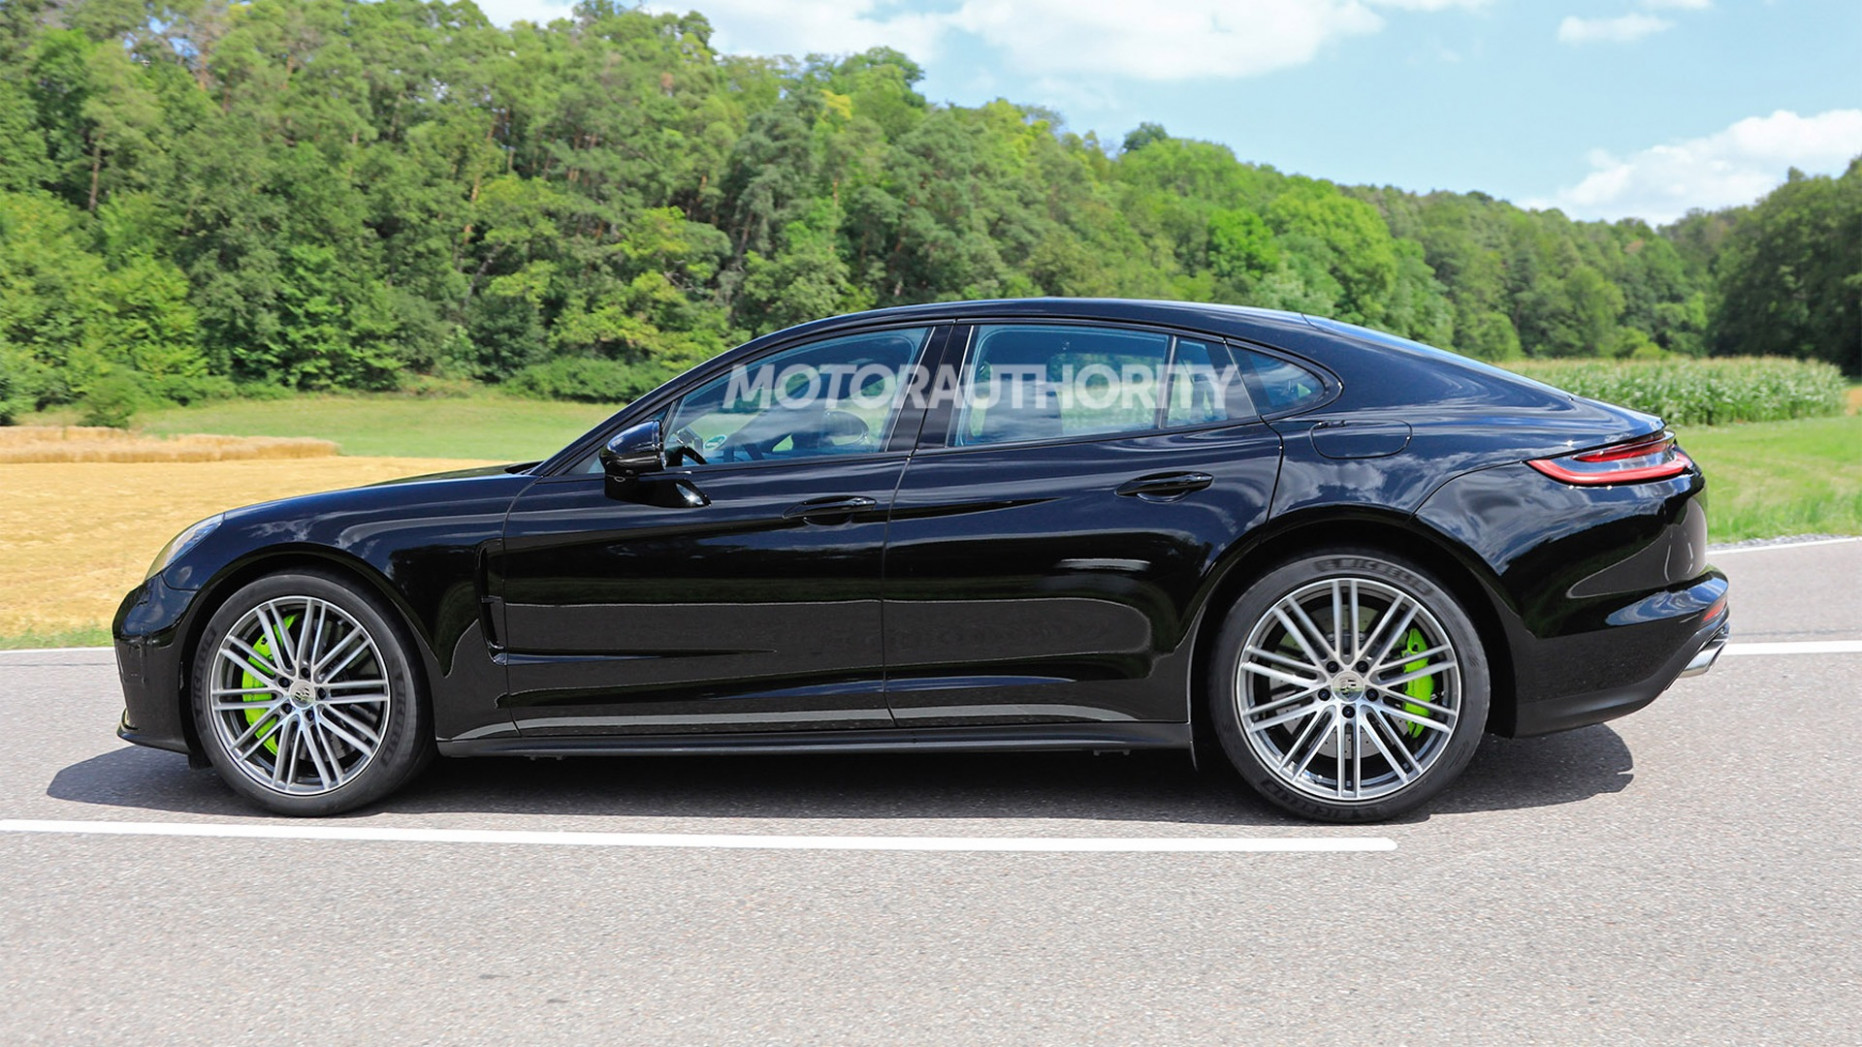 New Model and Performance 2022 The Porsche Panamera